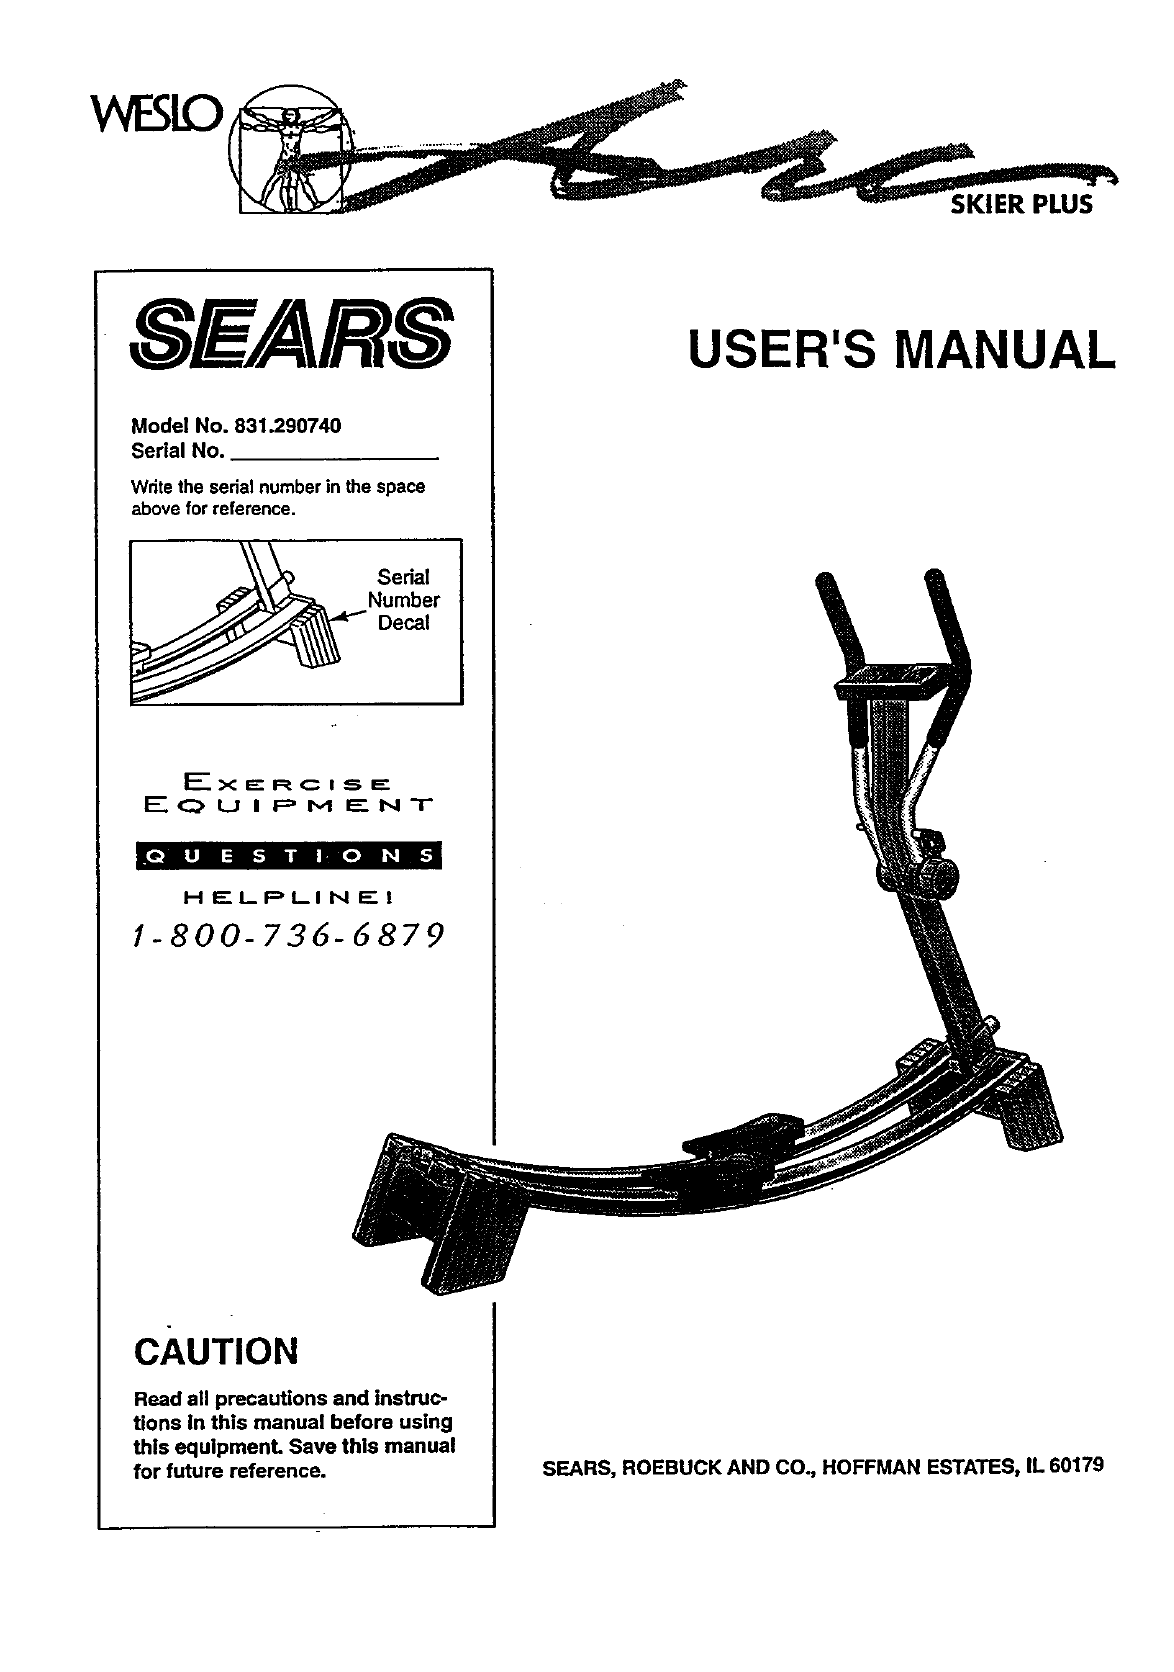 Sears Fitness Equipment 831.29074 User Guide